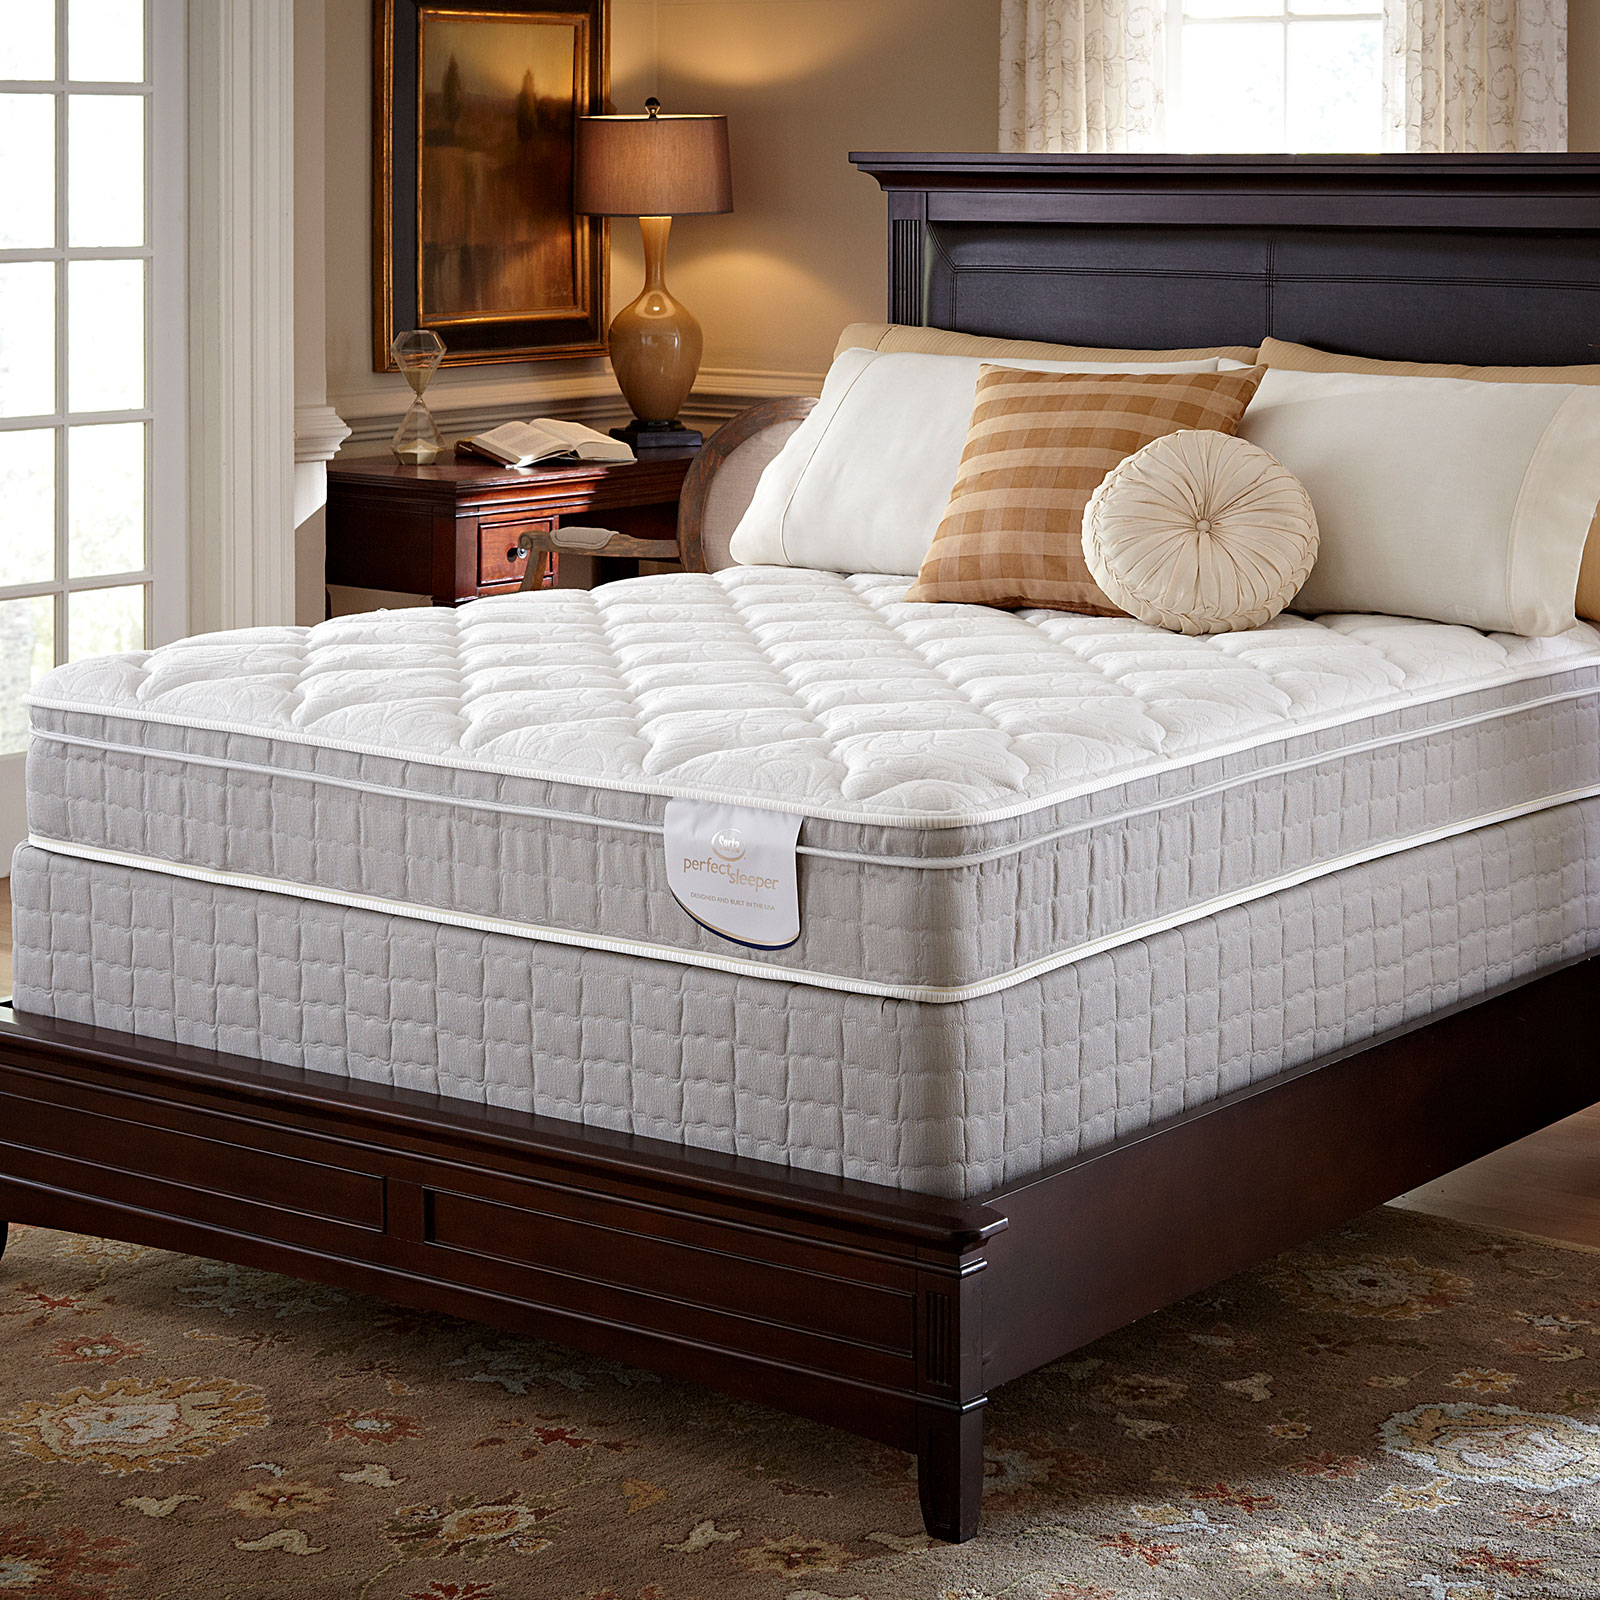 Serta Careybrook II Eurotop Full Mattress